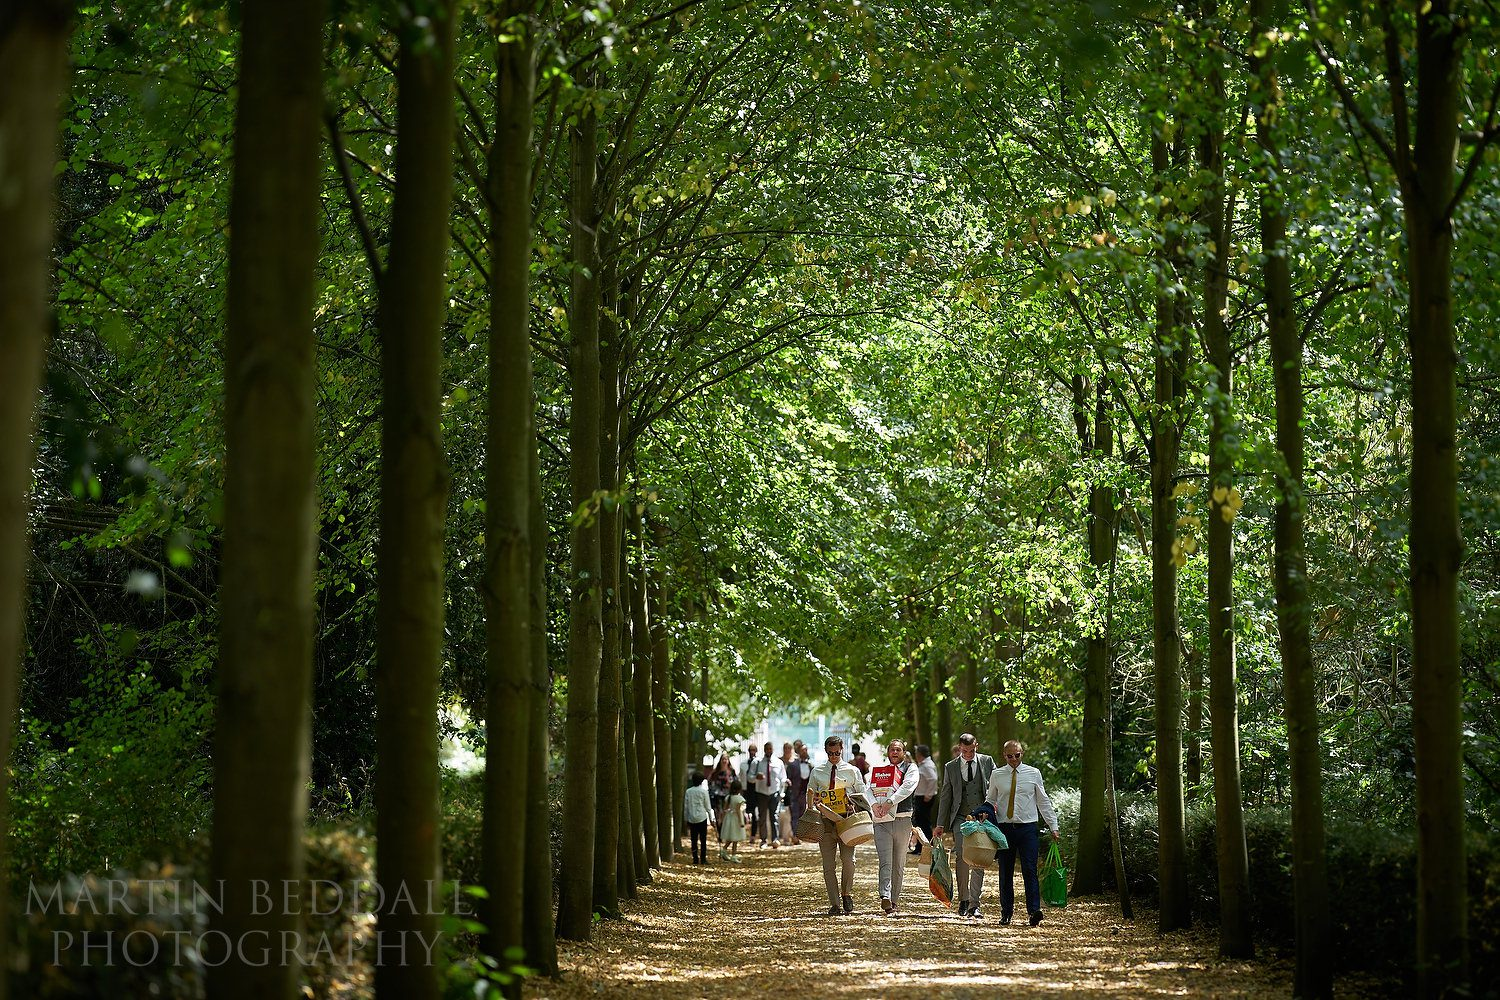 Heading to the picnic area in the grounds of Chiswick House